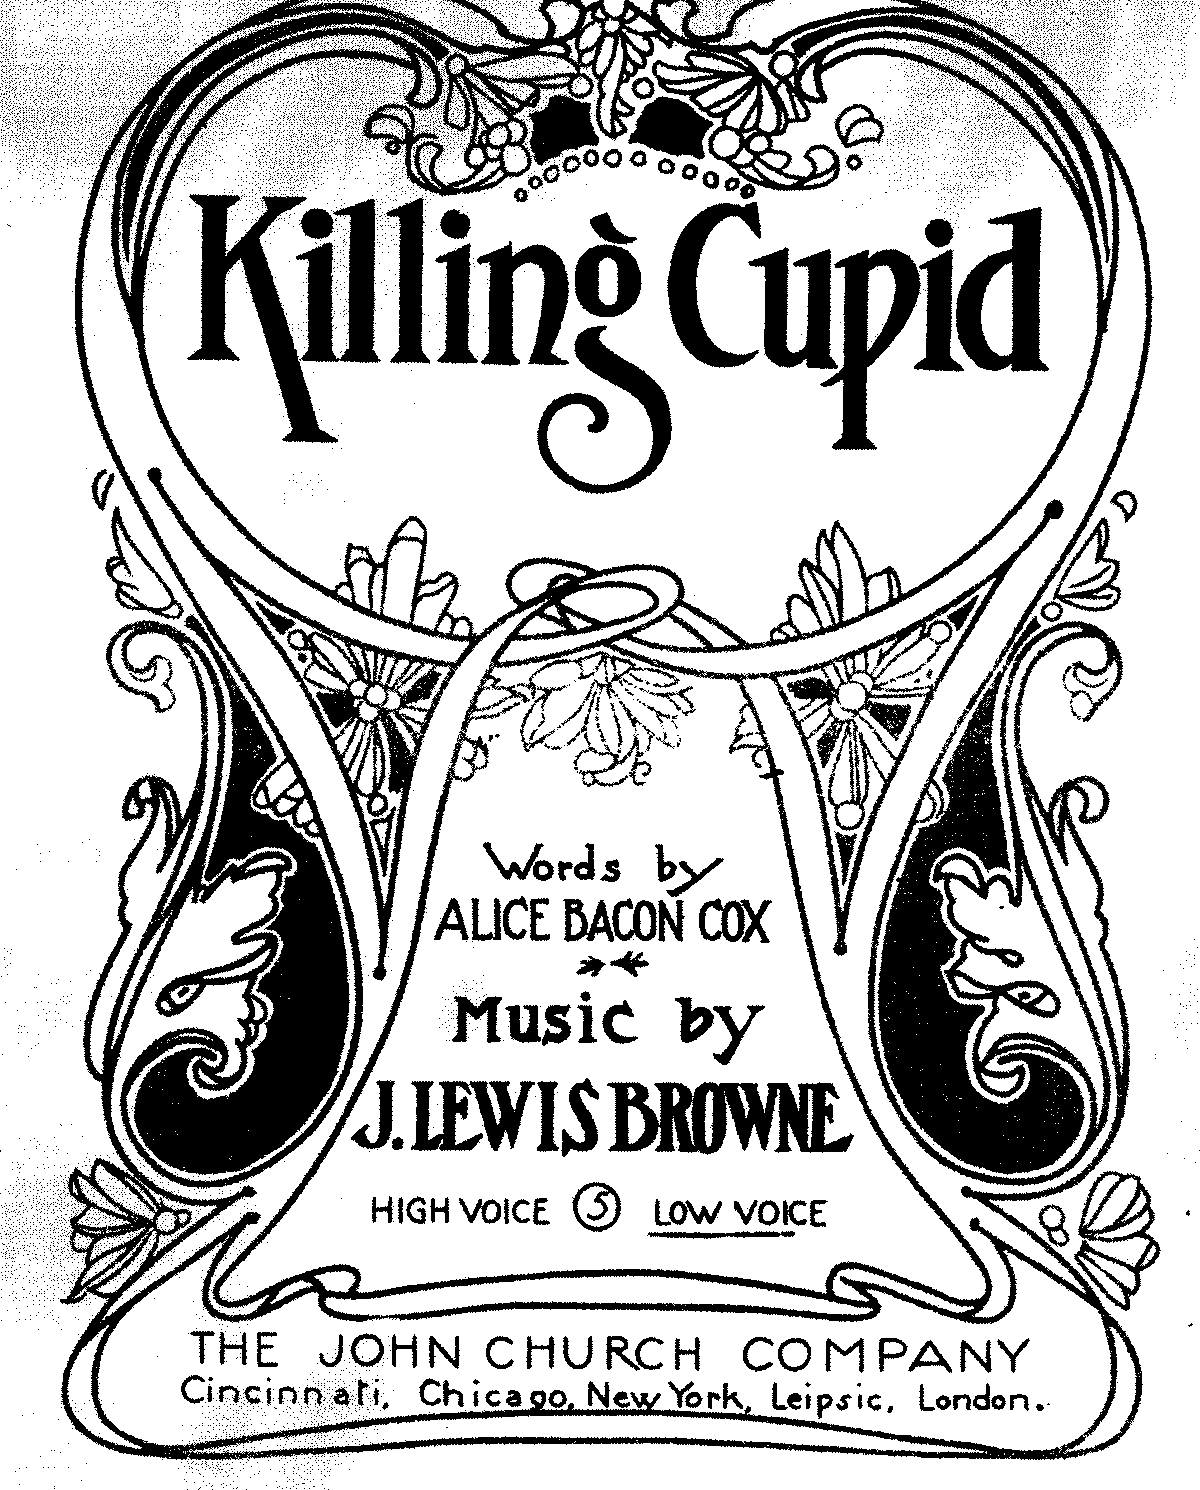 PMLP226918-sibley.1802.1616.Browne Killing Cupid cropped.pdf